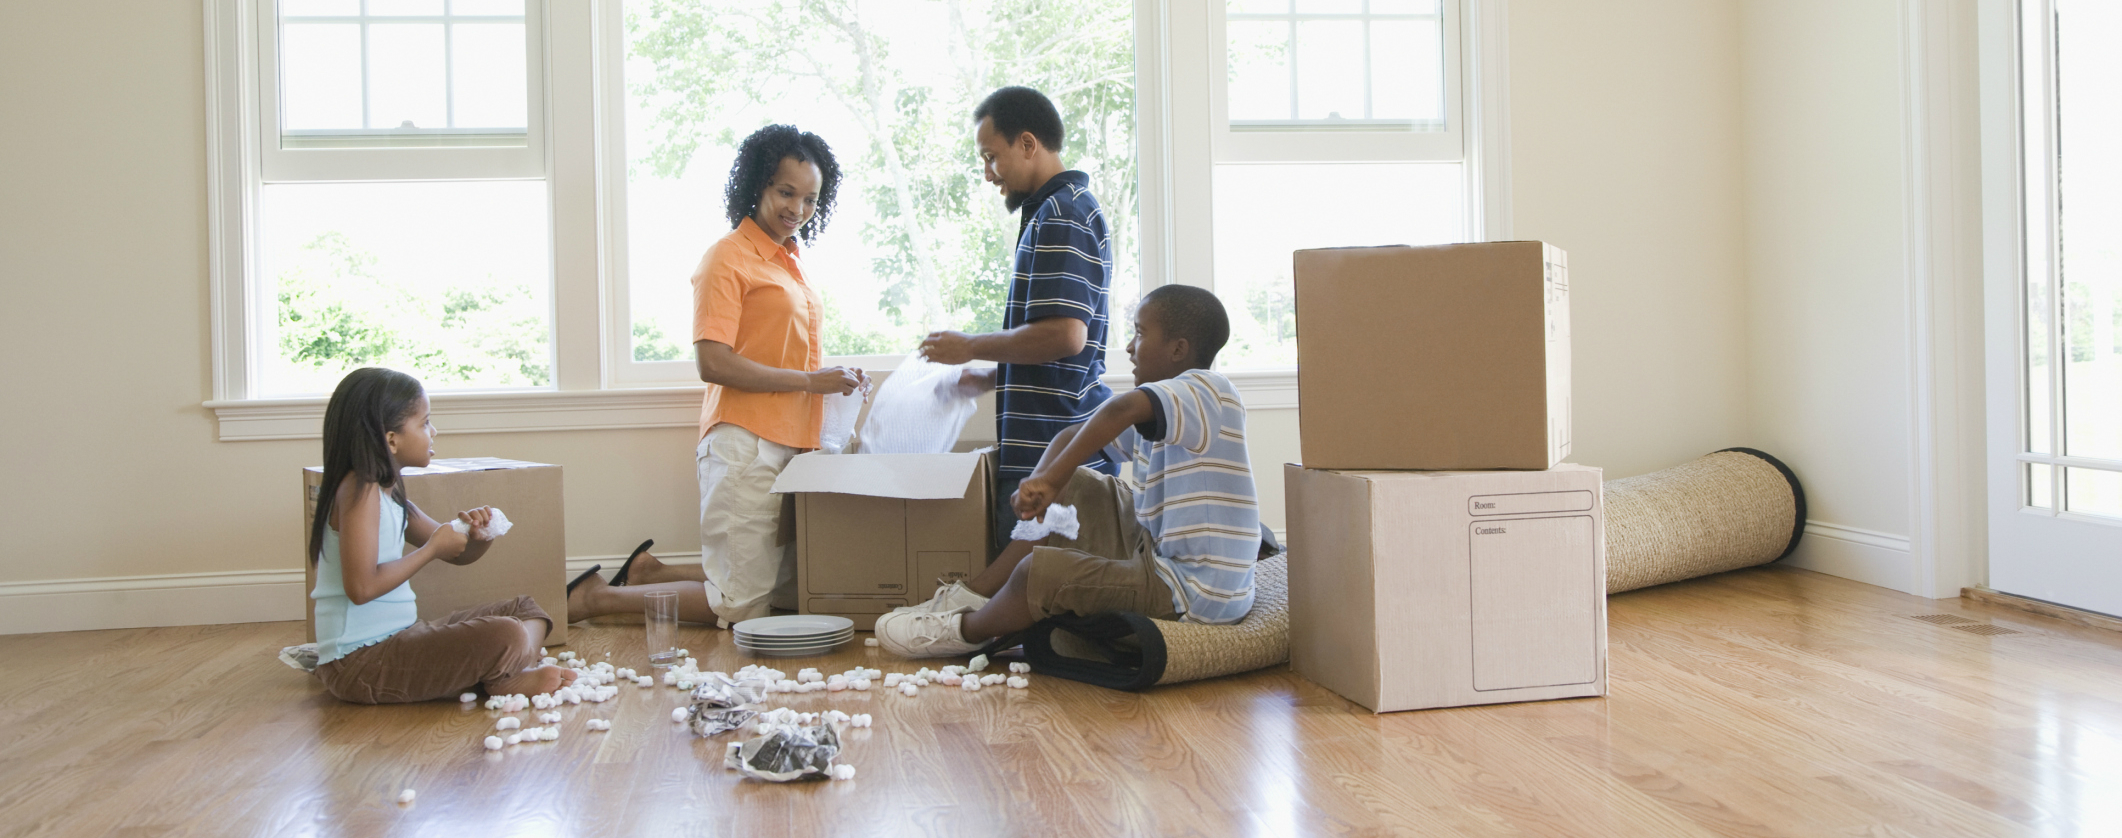 Residential Movers in San Antonio